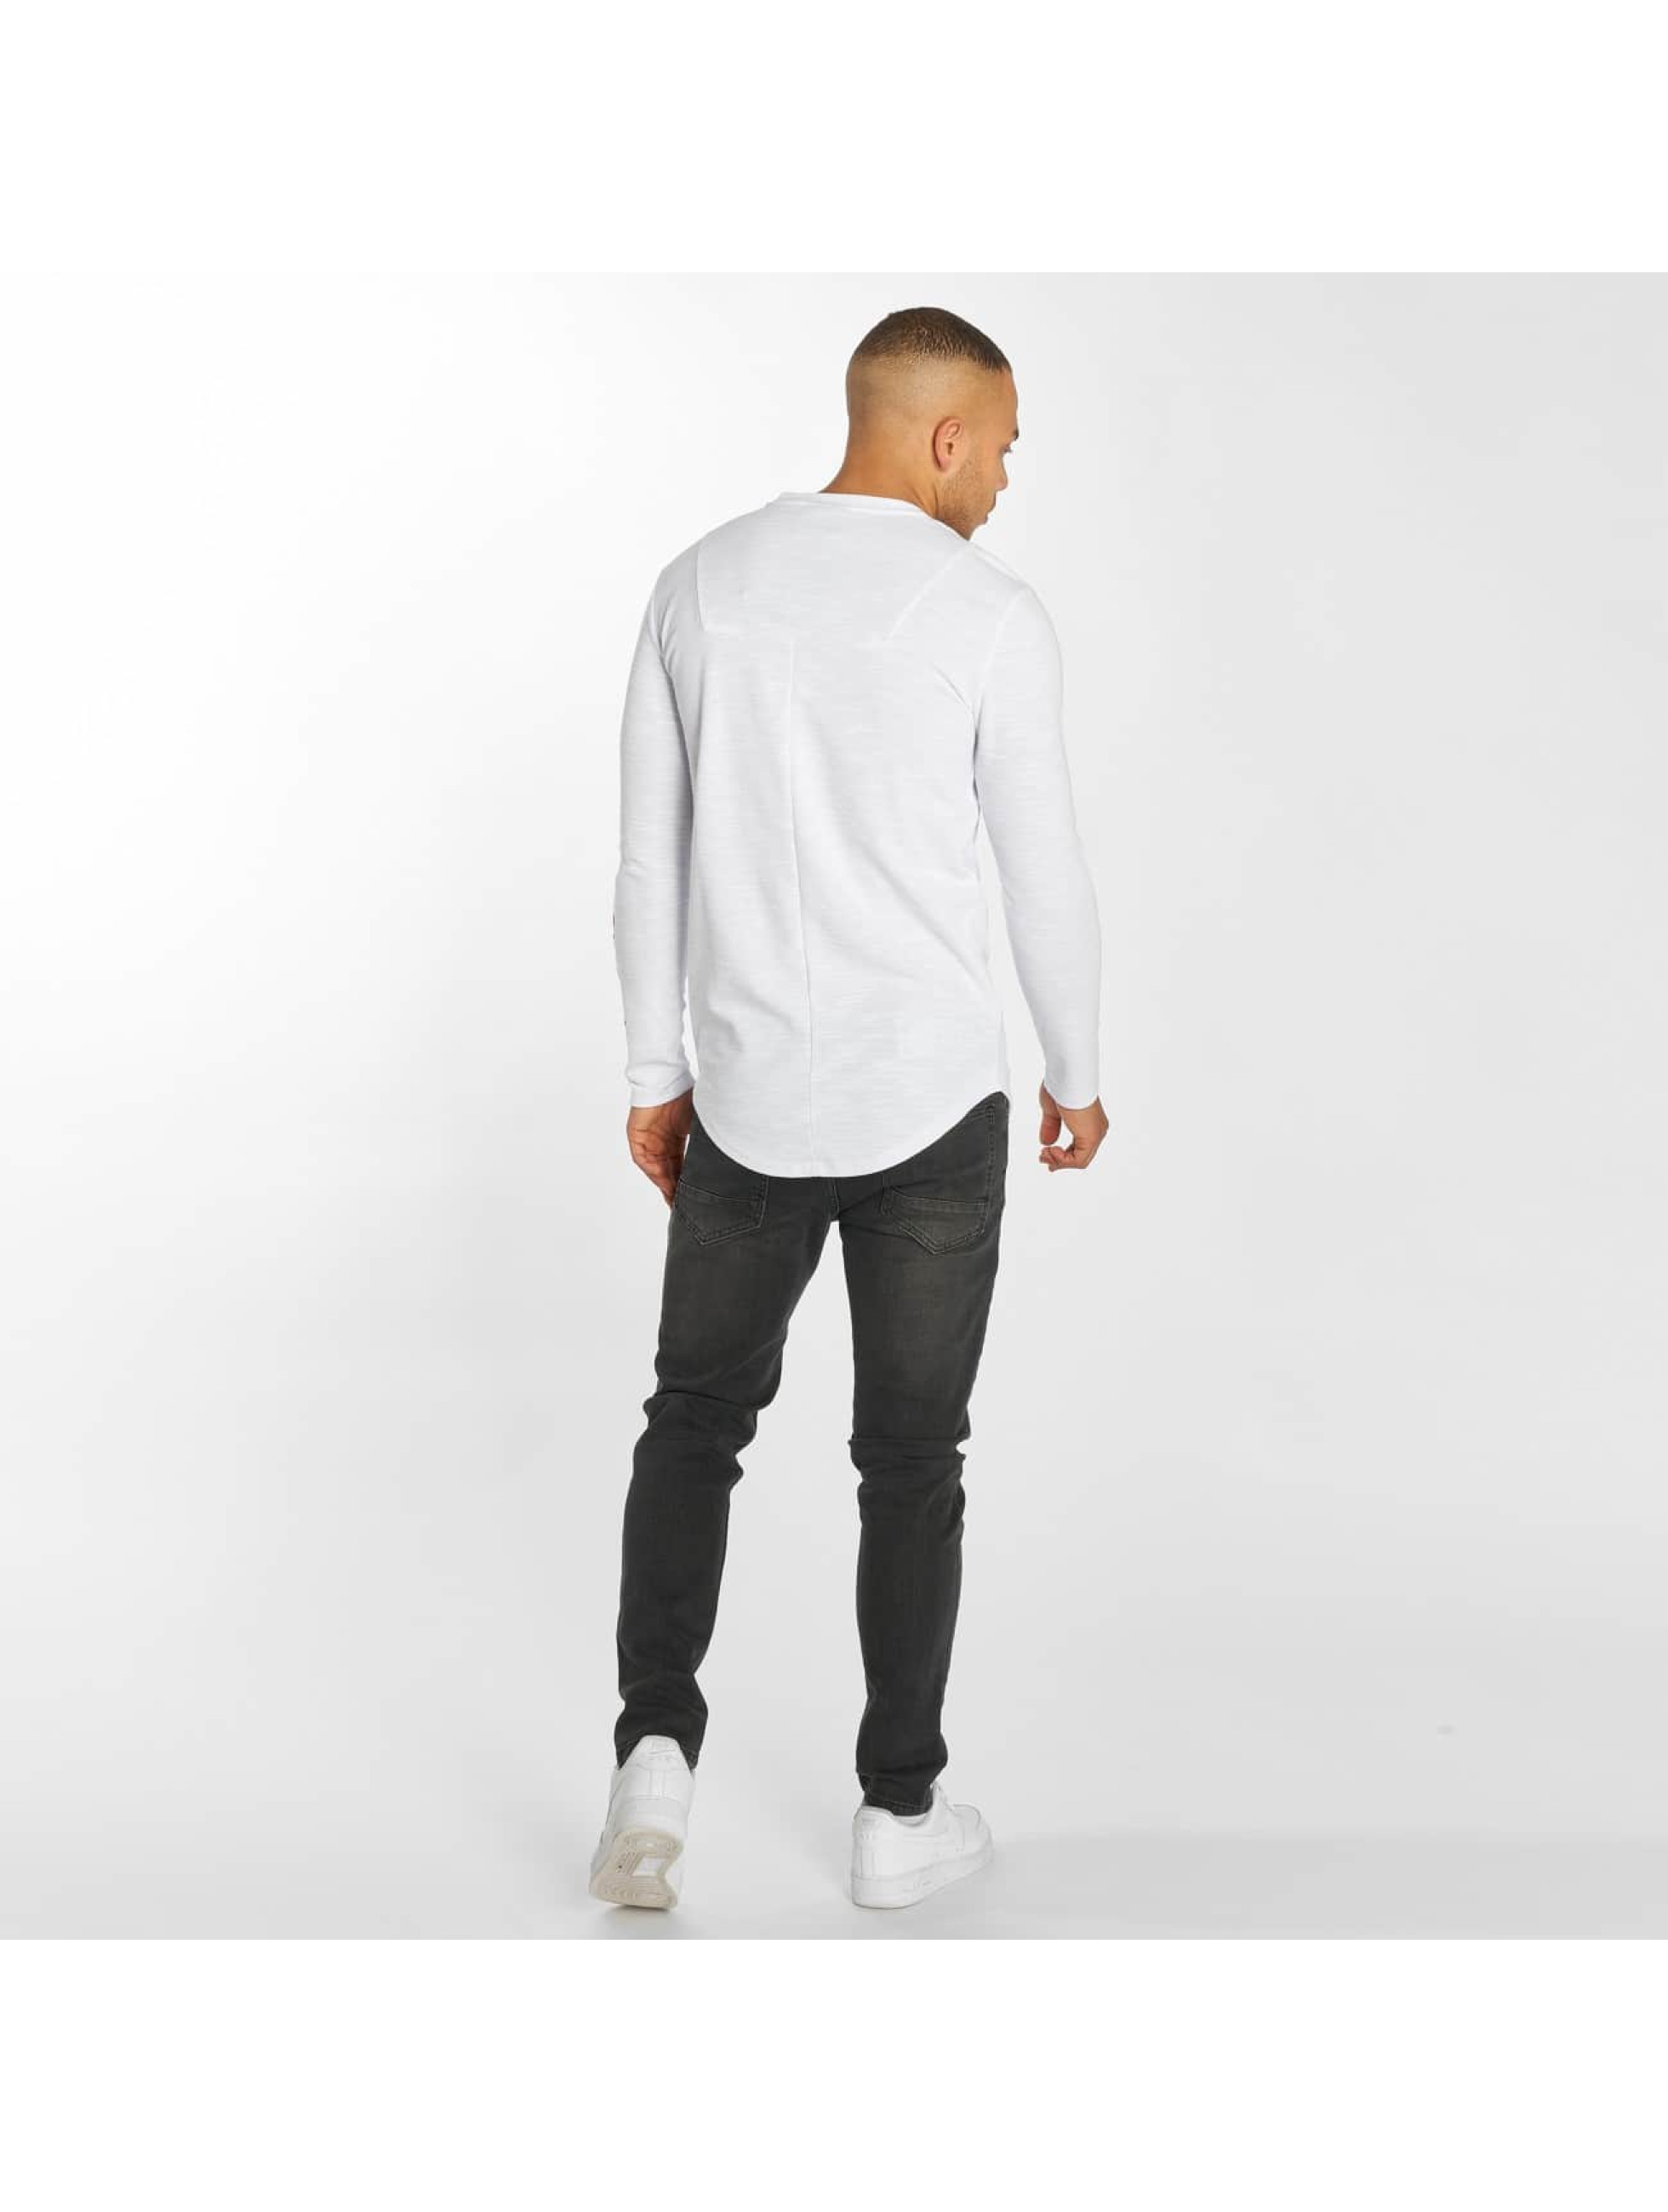 Hechbone T-Shirt manches longues Roses blanc